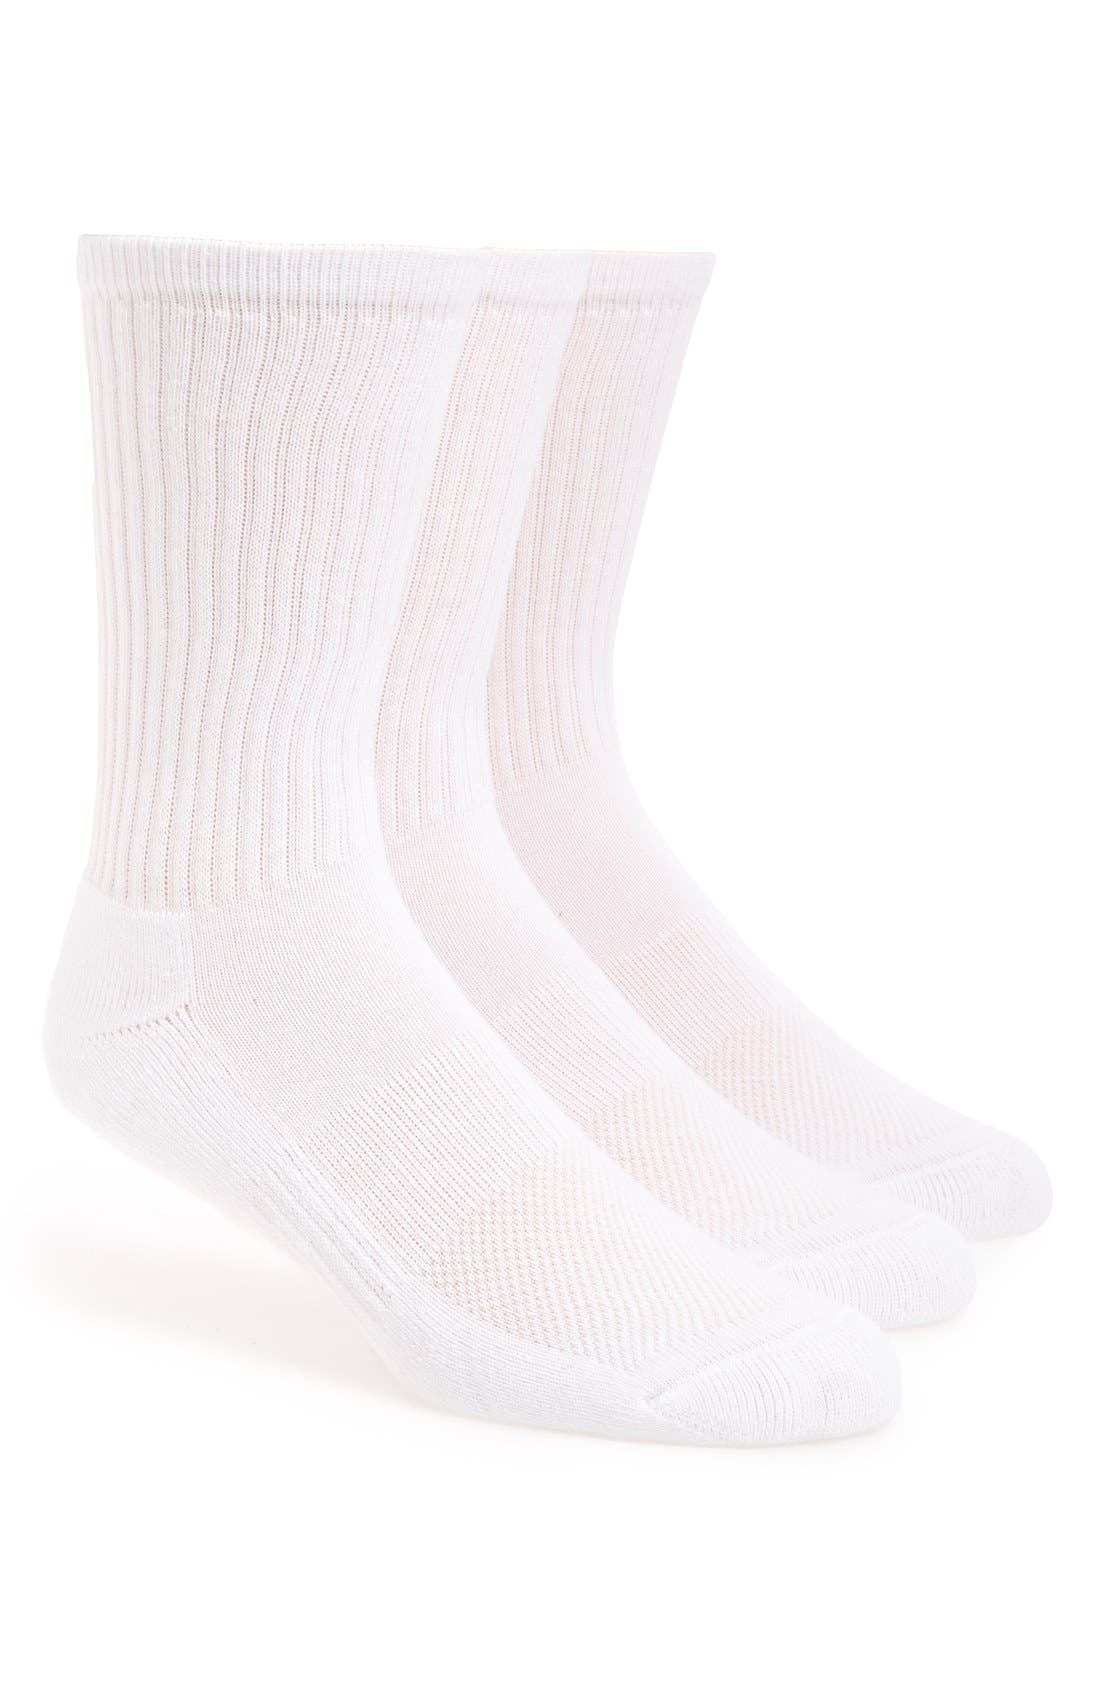 Nordstrom Mens Shop 3-Pack Athletic Socks